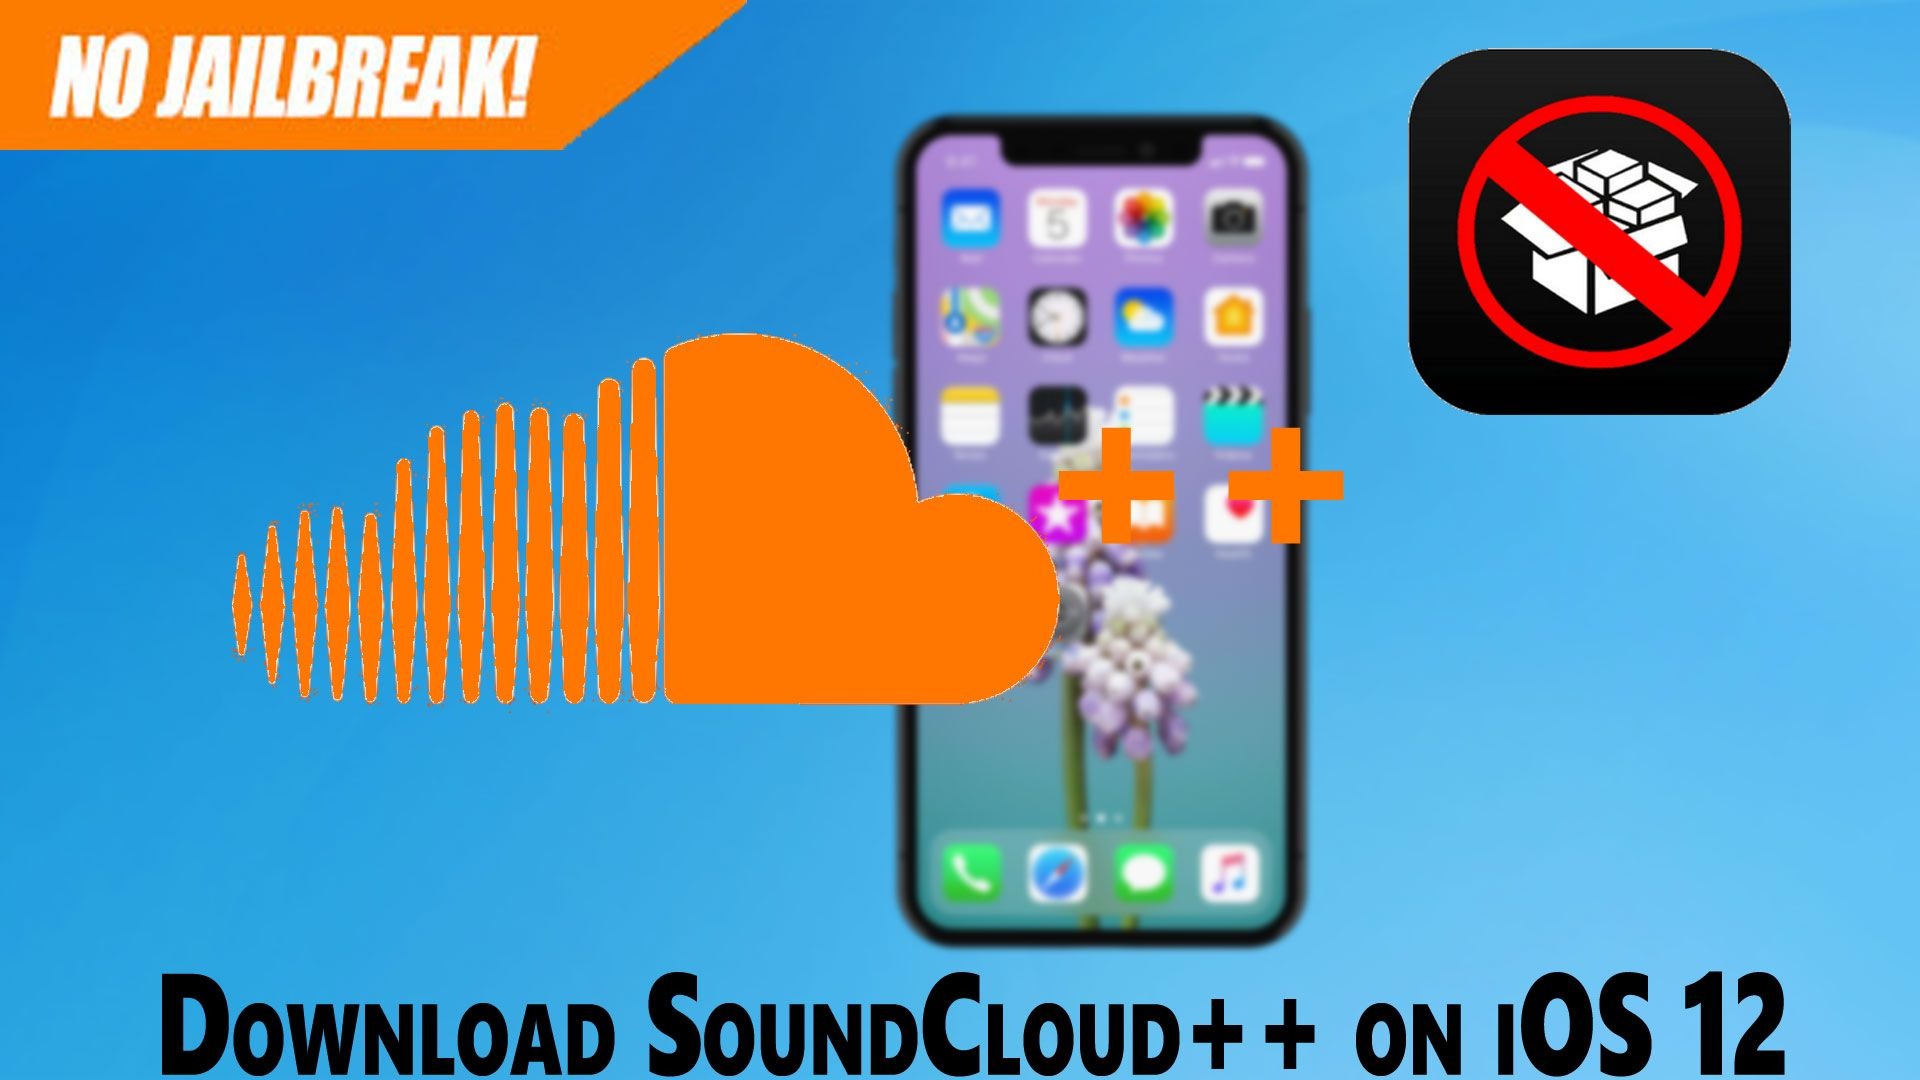 How to download & install soundcloud++ on iOS 12 No